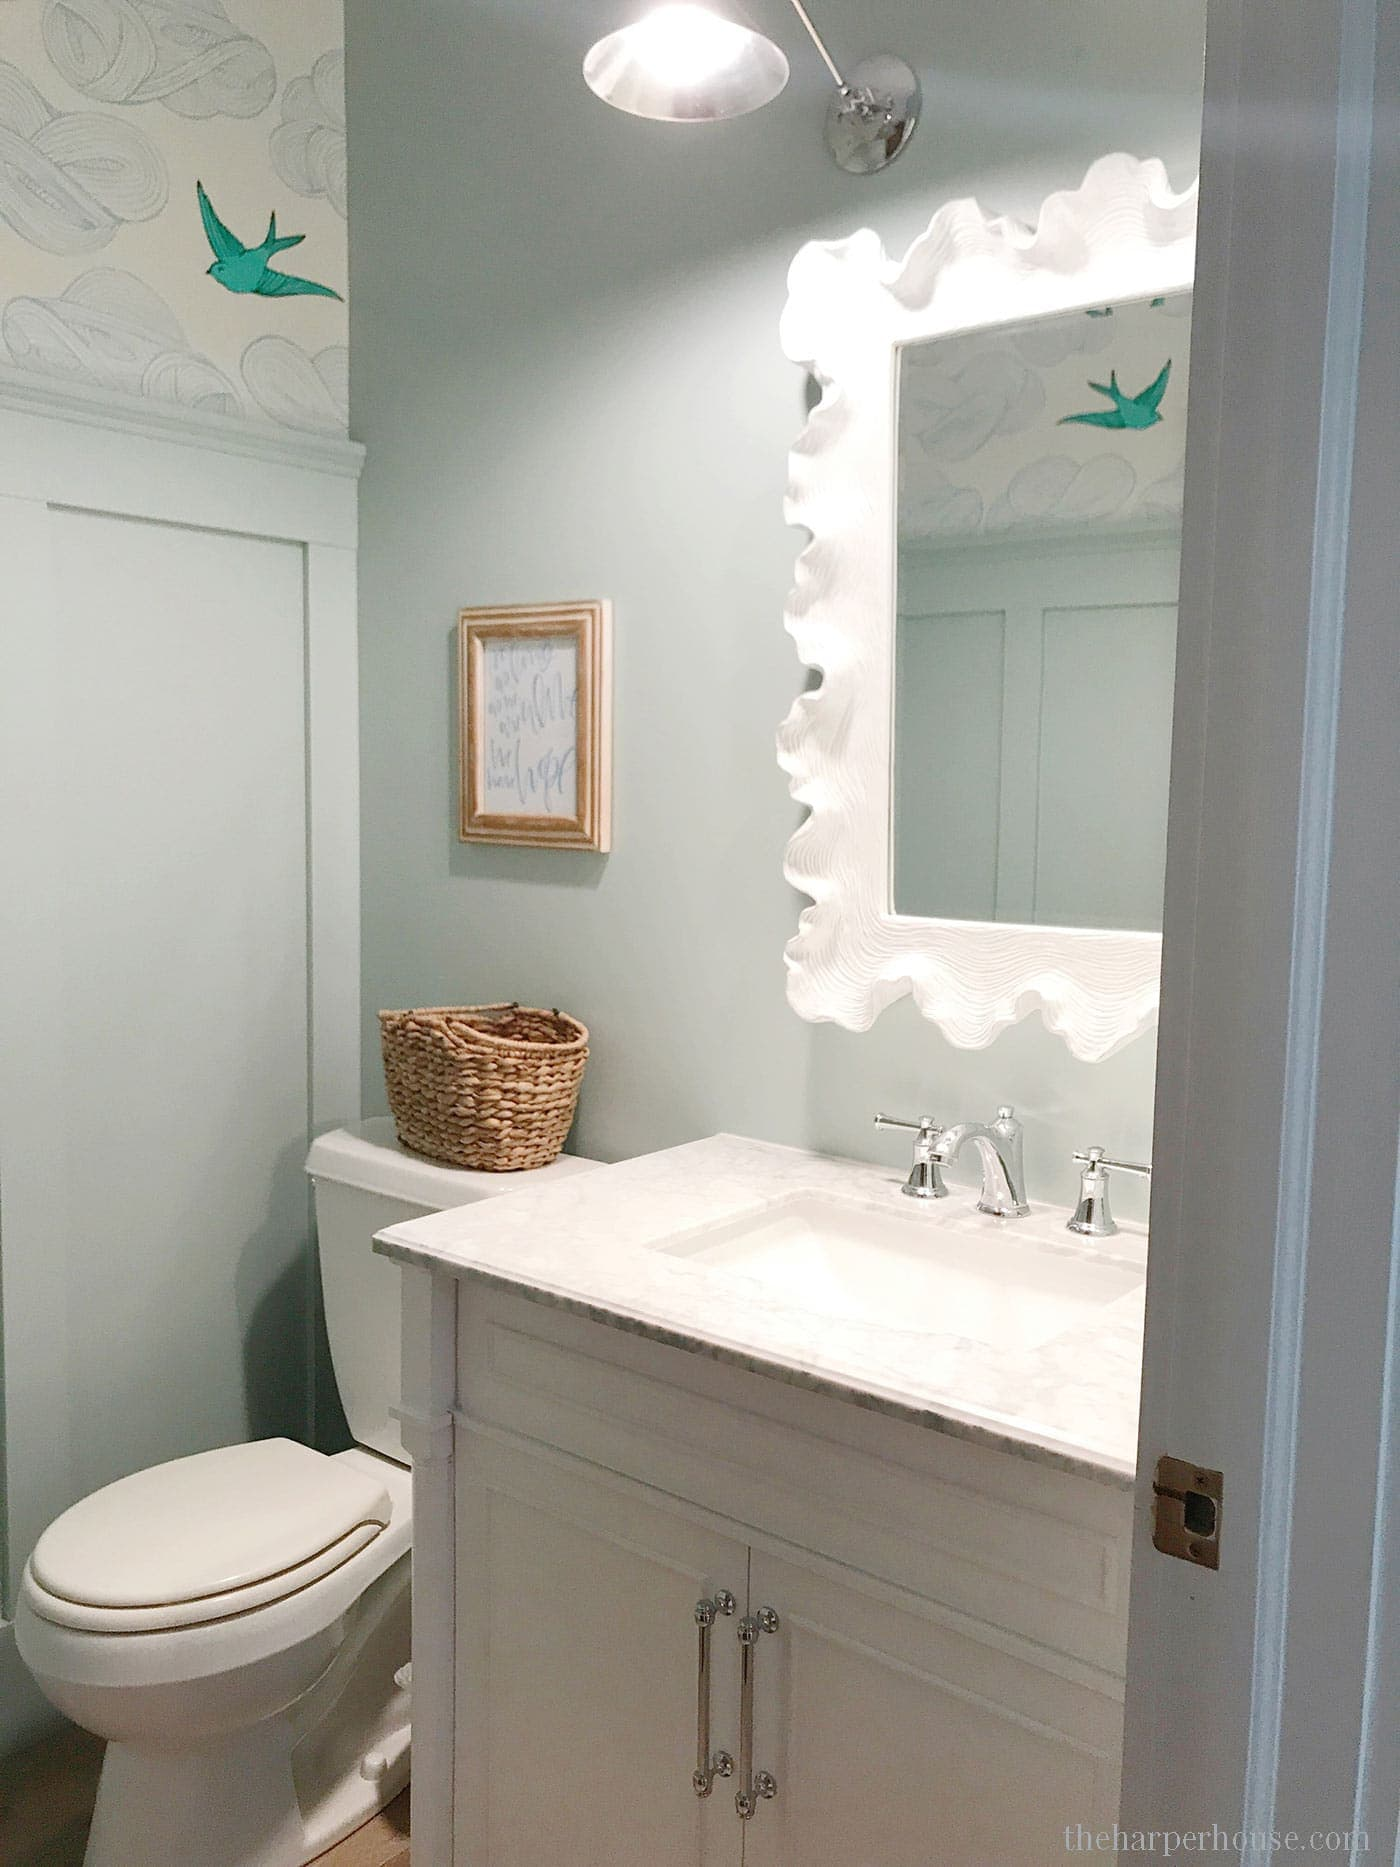 Cool coastal Hamptons style powder bathroom remodel featuring BM Palladian Blue wainscoting and Hygge and West Daydream wallpaper | Bathroom Vanities Single Sink | Bathroom Decorating Ideas | Bathroom Remodeling Ideas | Farmhouse Bathroom | Bathroom Cabinets #bathroomidea #bathroomdesigns #bathroomdecor #bathroomremodel